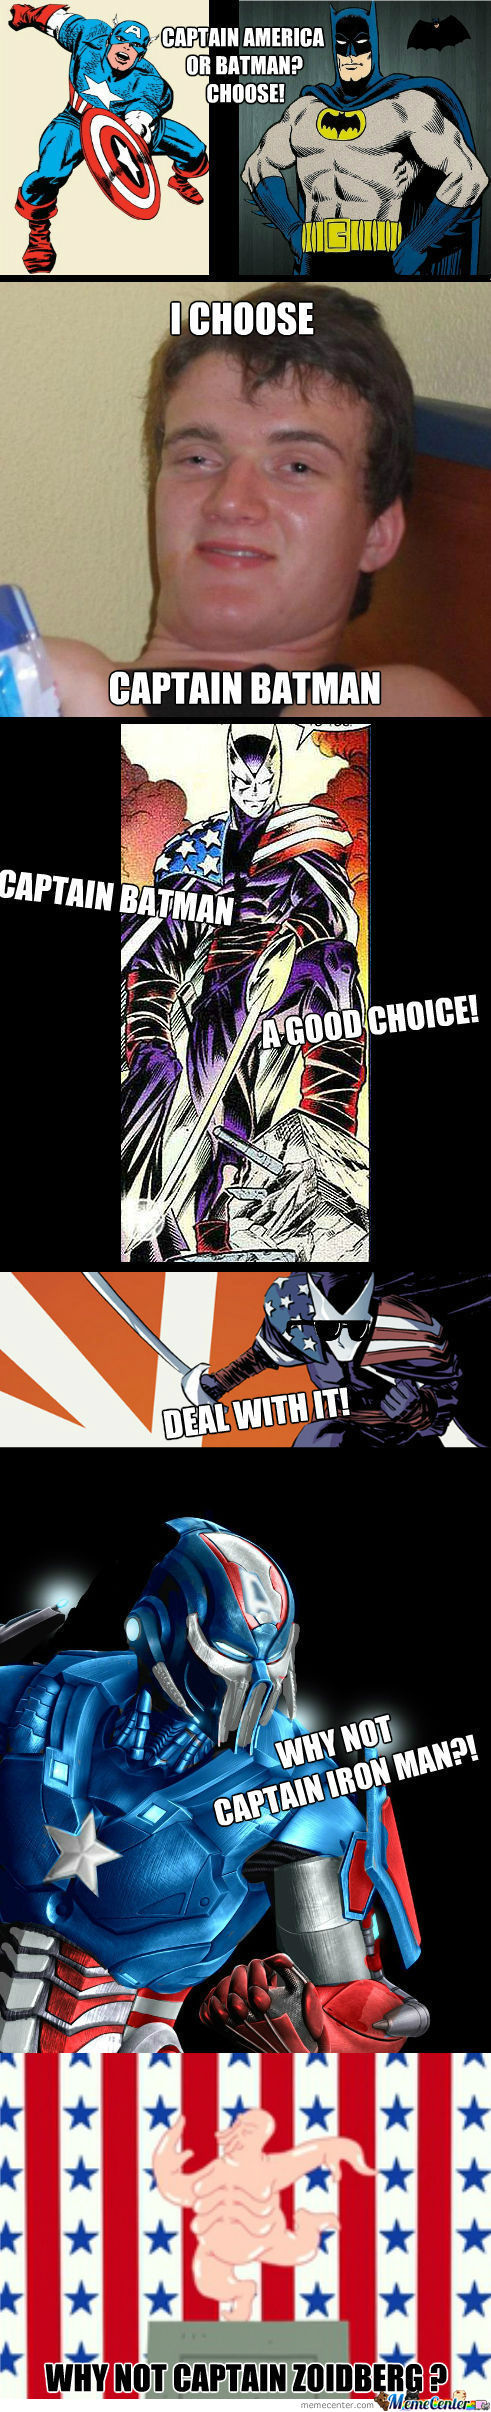 [RMX] I Choose Captain Batman